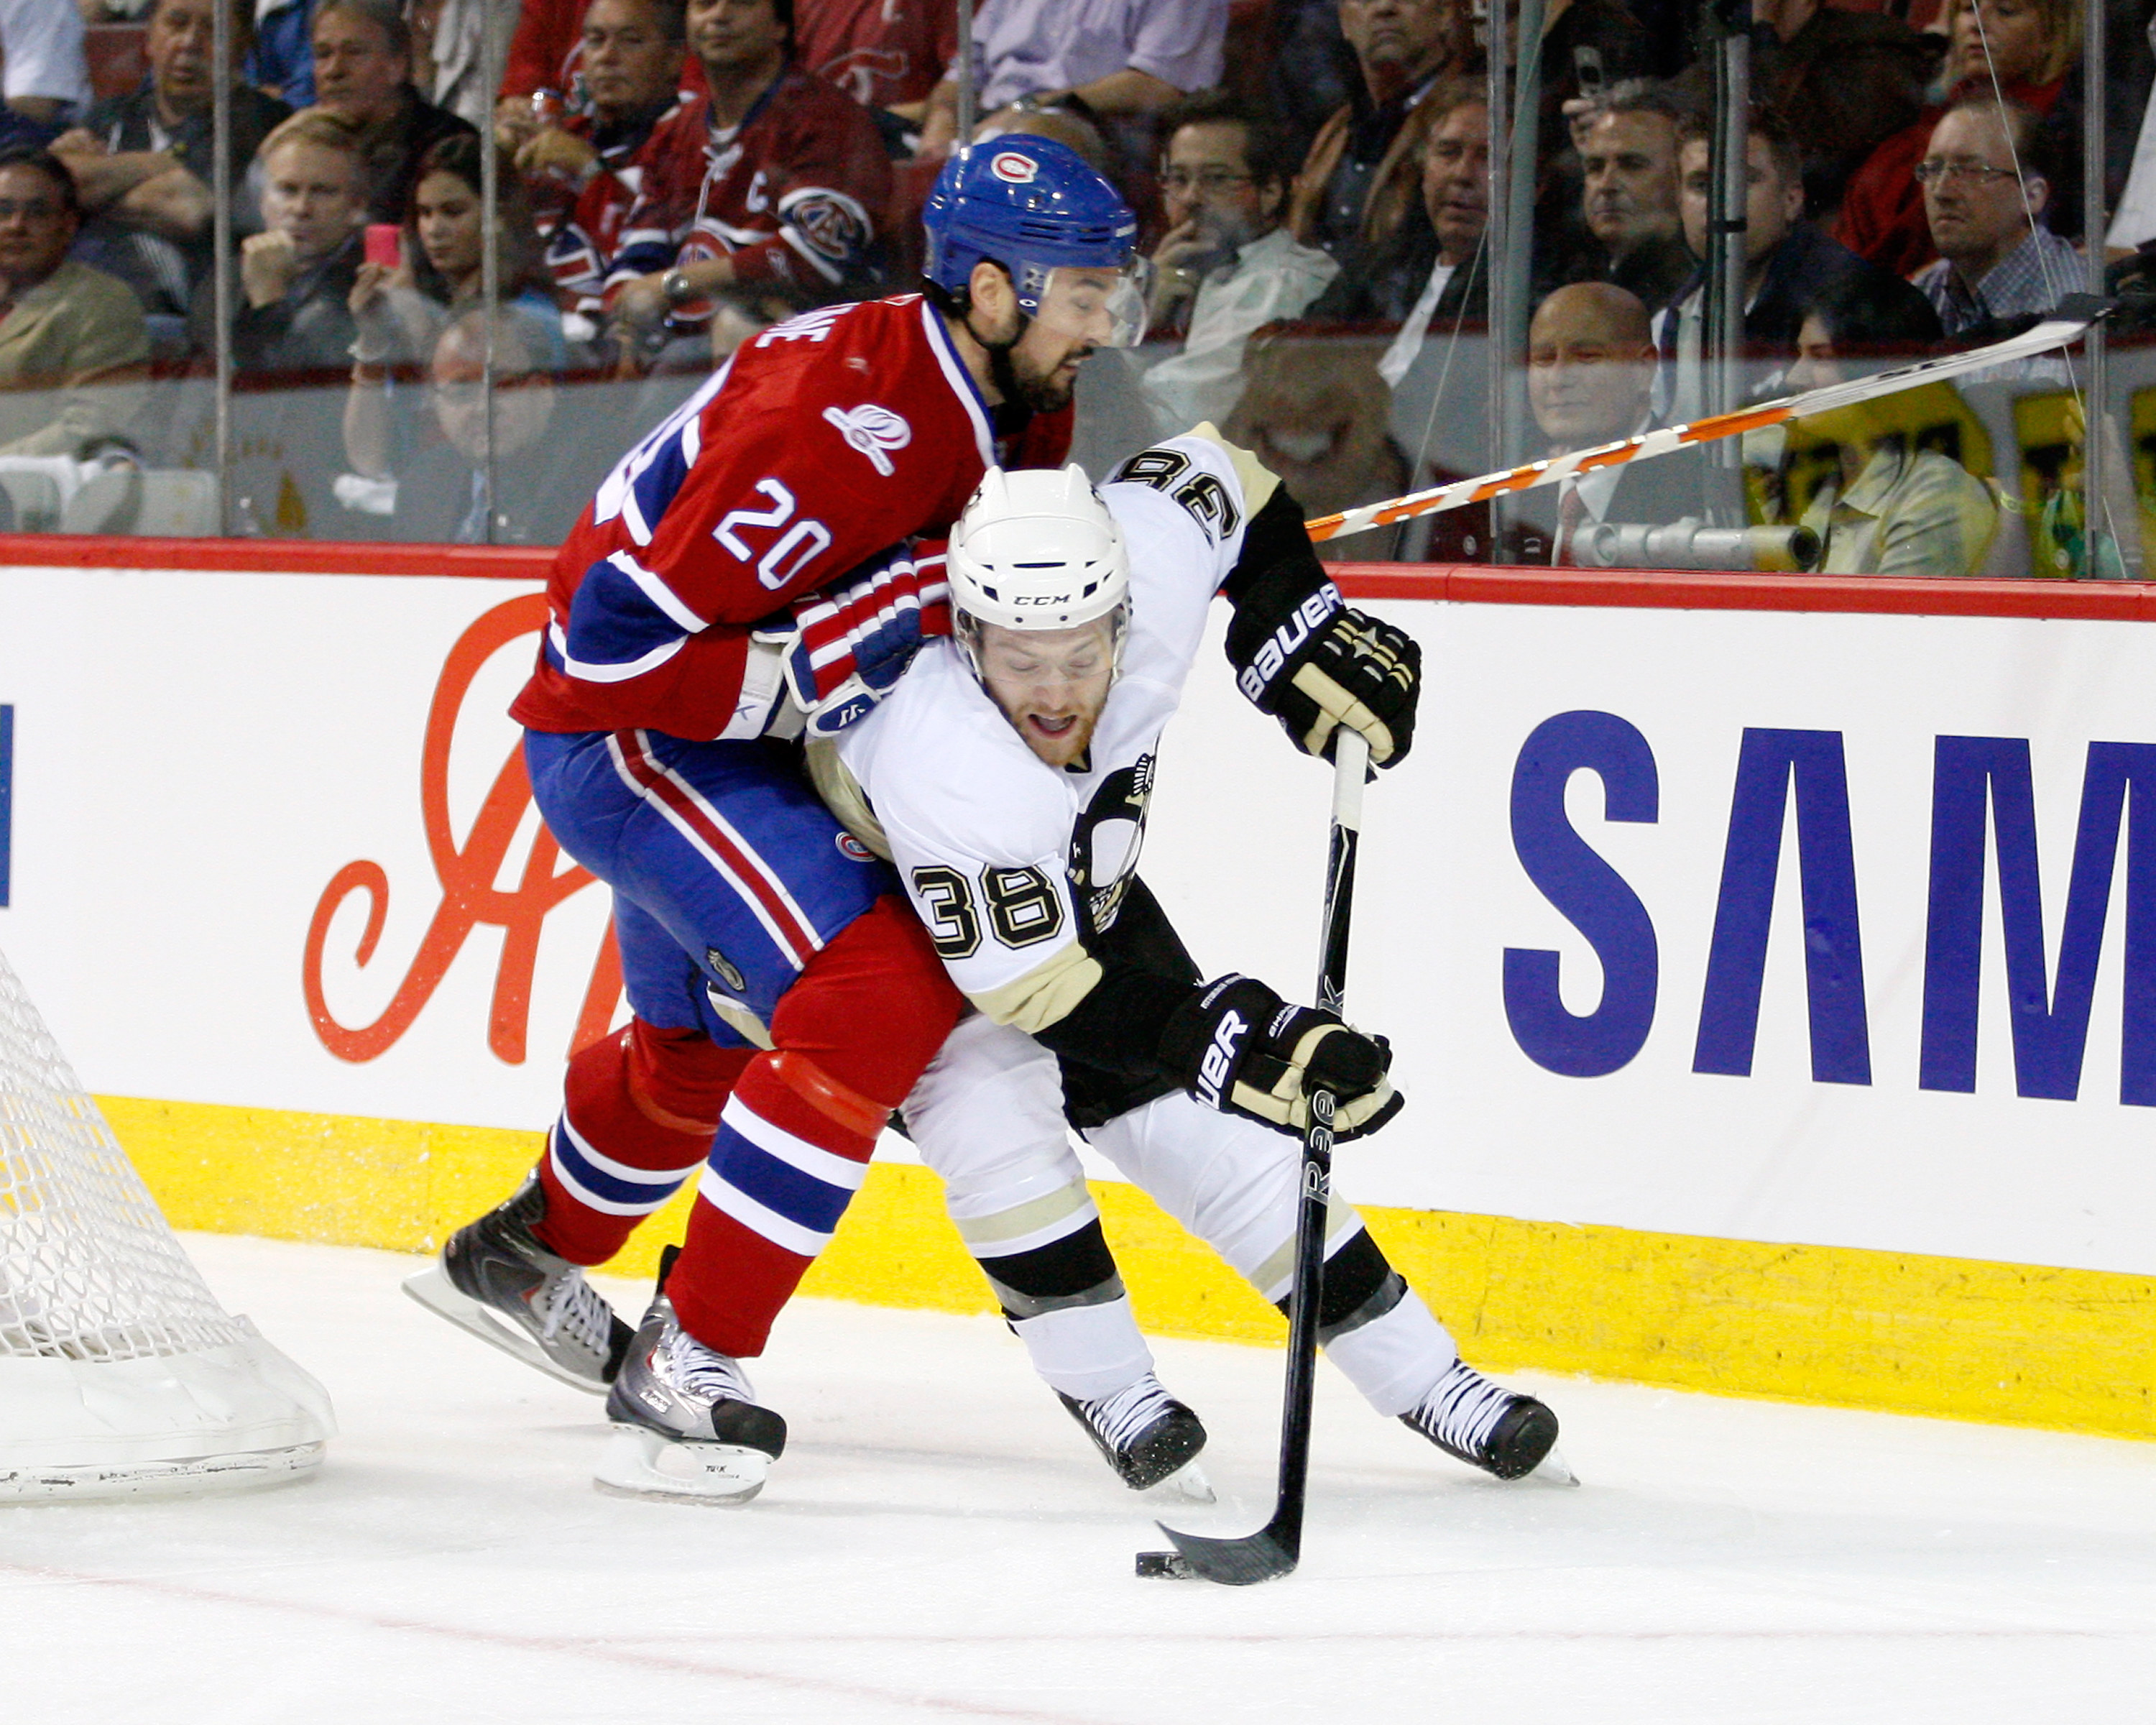 MONTREAL- MAY 4:  Mark Letestu #38 of the Pittsburgh Penguins skates with the puck while being defended by Ryan O'Byrne #20 of the Montreal Canadiens in Game Three of the Eastern Conference Semifinals during the 2010 NHL Stanley Cup Playoffs at the Bell C